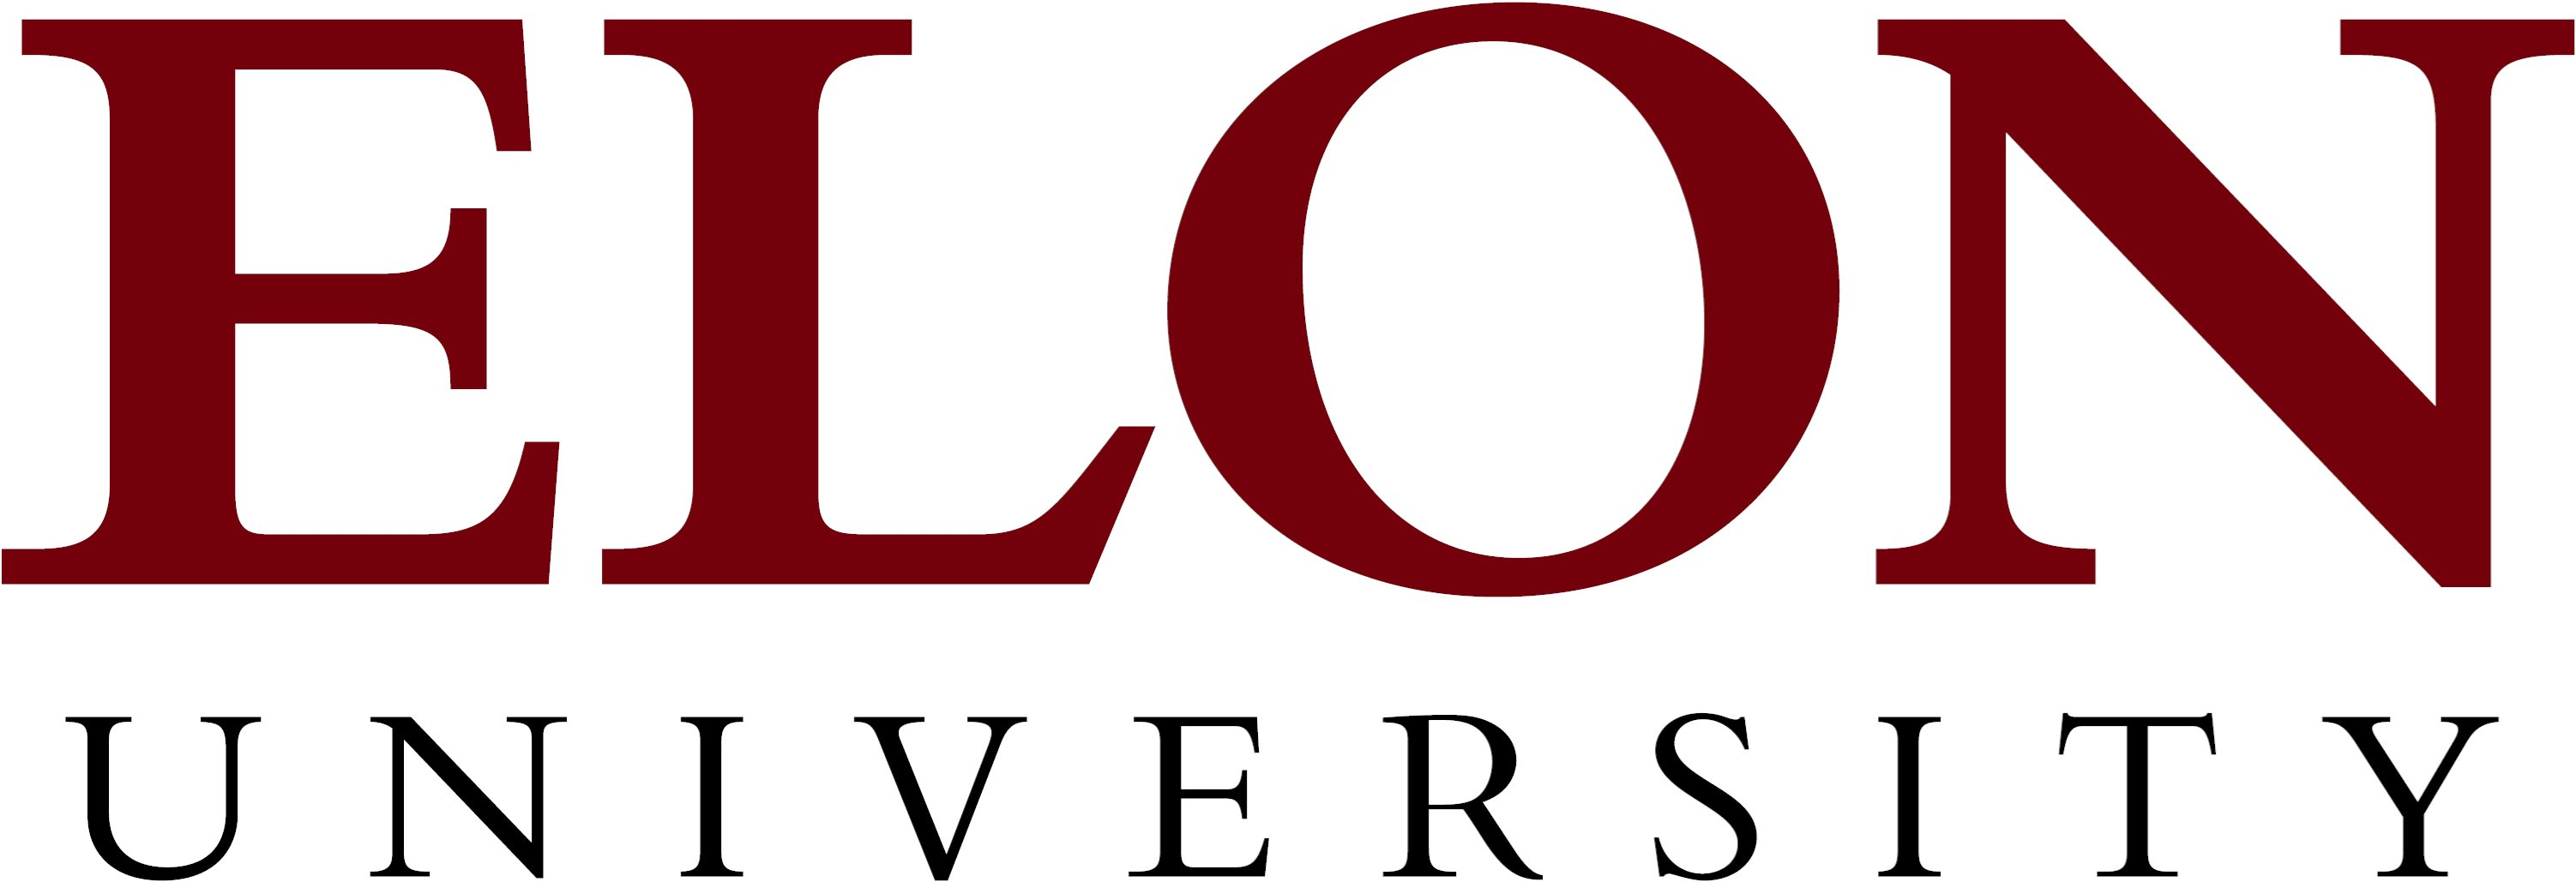 Elon University primary wordmark example